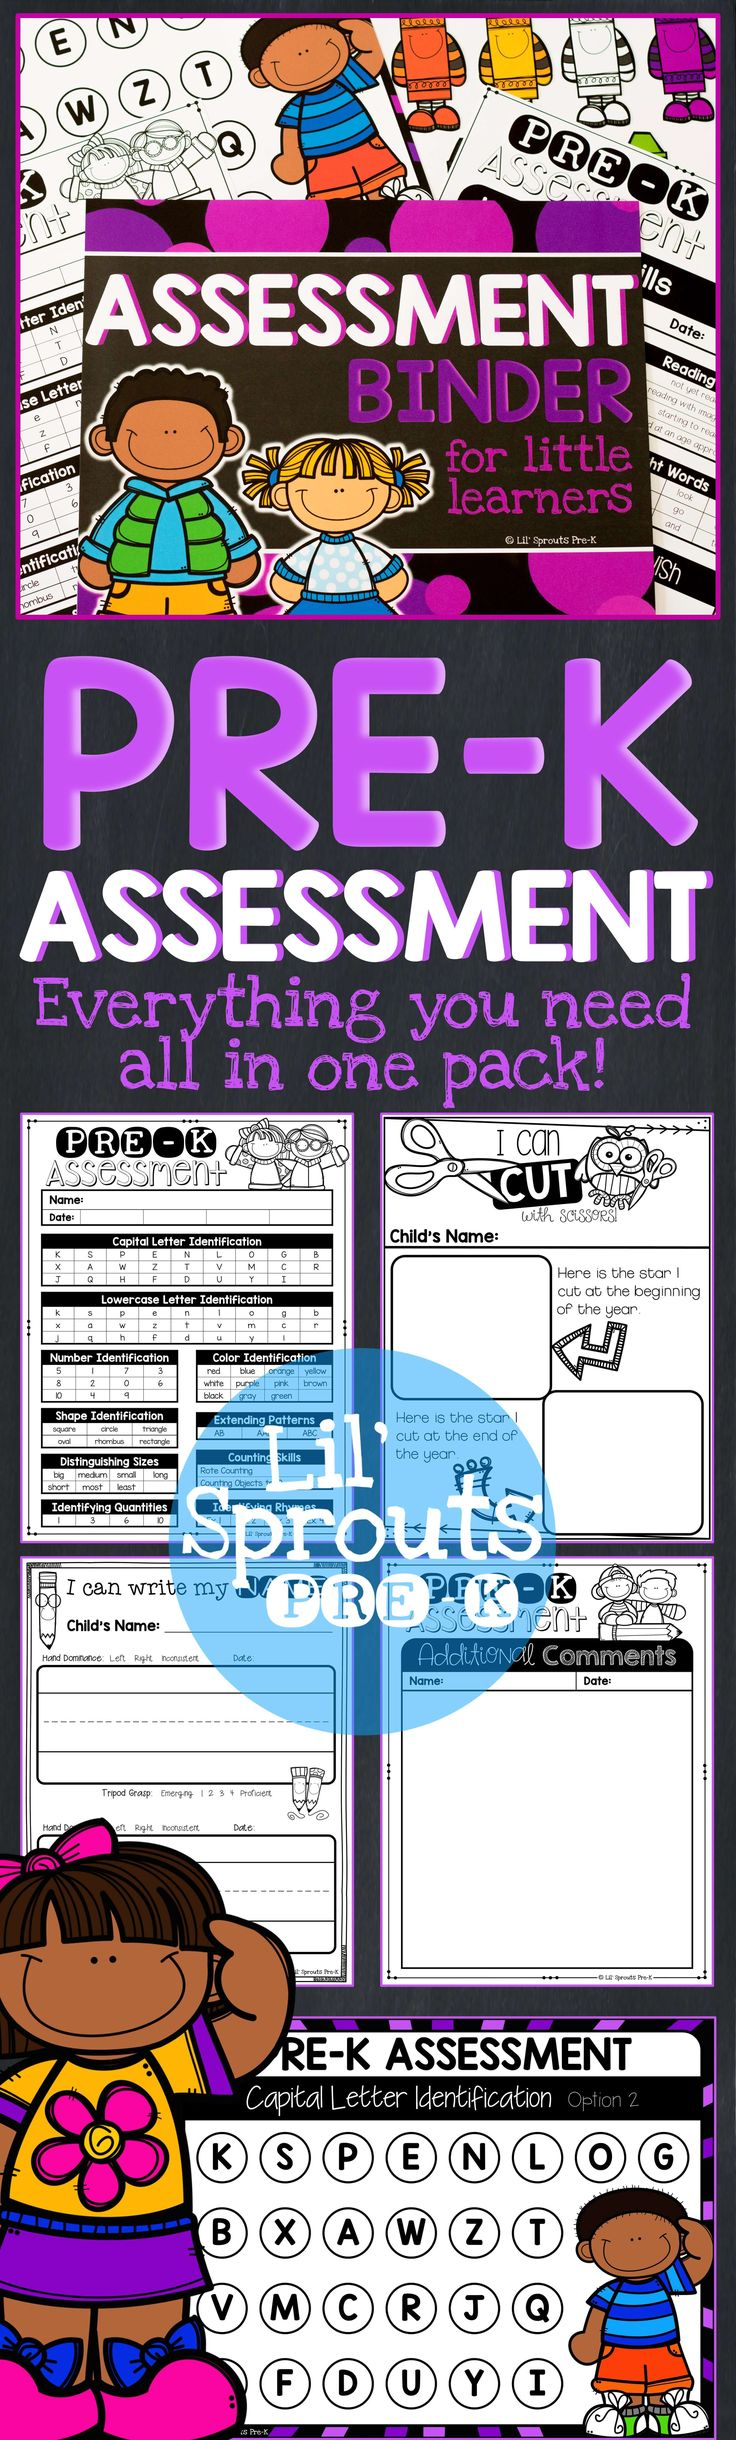 This Pre-K Assessment Pack includes everything you need to assess your students, with so many printables to choose from!! Perfect for back to school! I recently updated this pack and now you can add your own comments, change the titles on the forms, and add in your own assessment data.